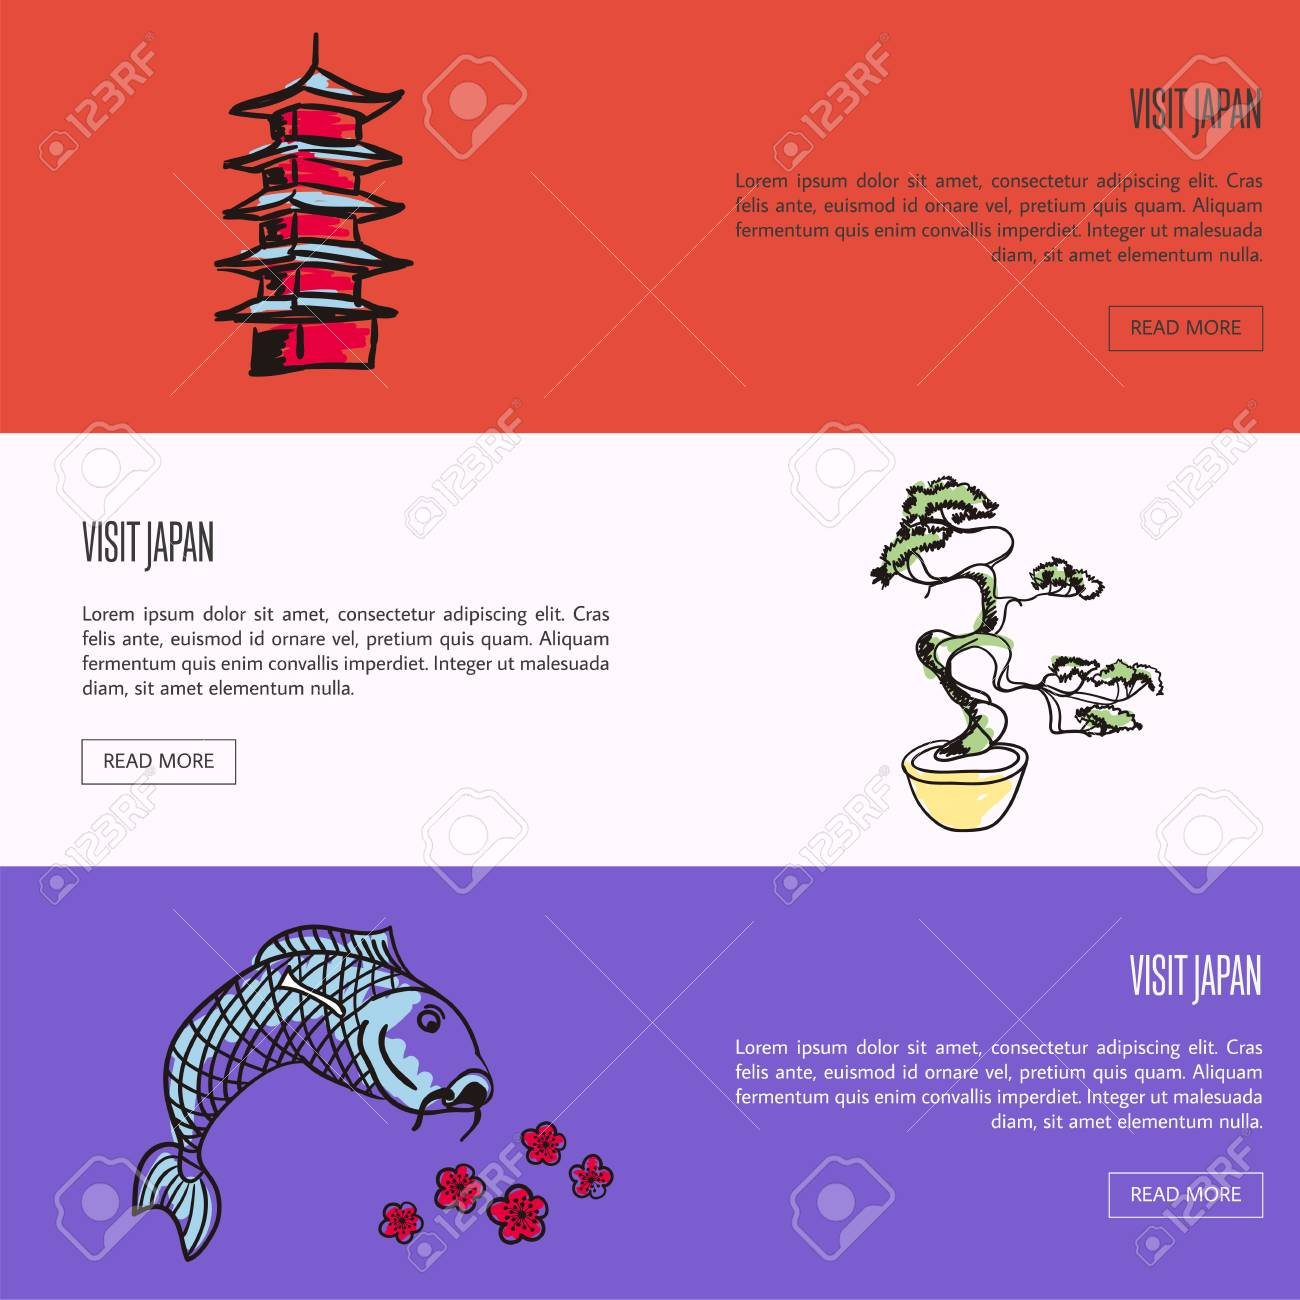 hight resolution of koi fish cherry flowers bonsai tree in pot pagoda tower drawn vector illustrations templates with country related symbols for travel company landing